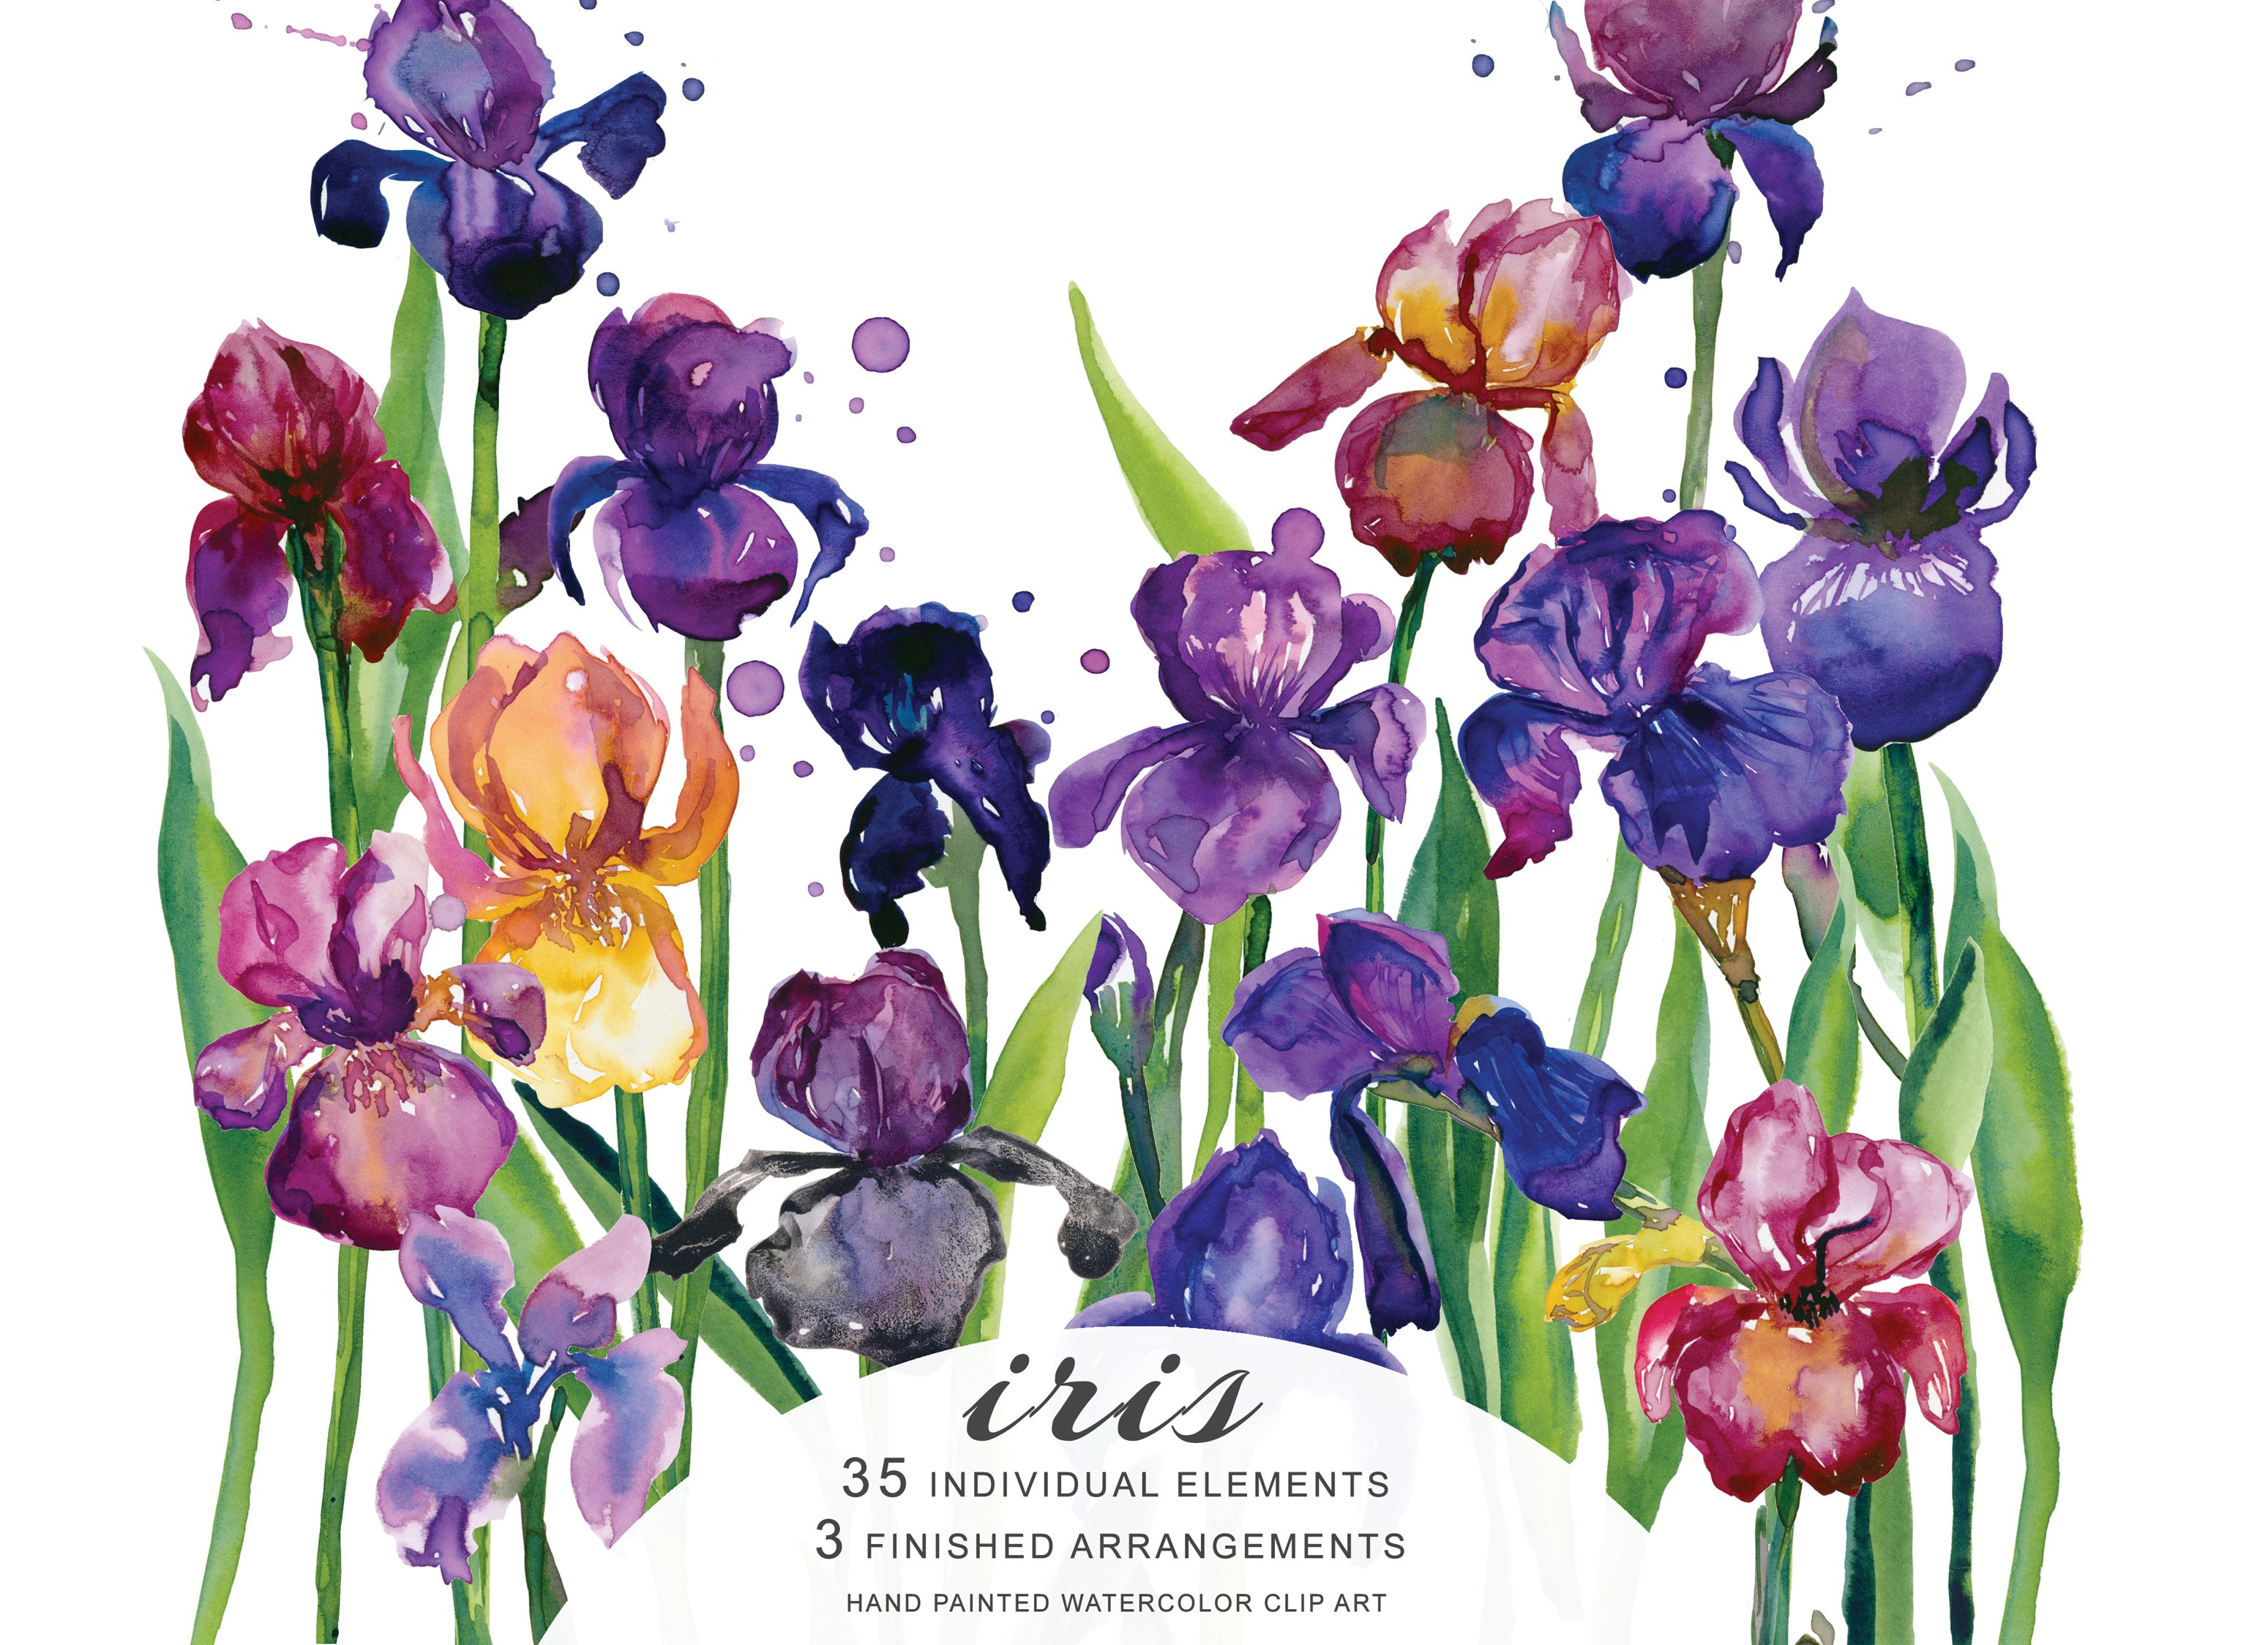 Watercolor Iris Flowers Clipart Illustrations Creative Market